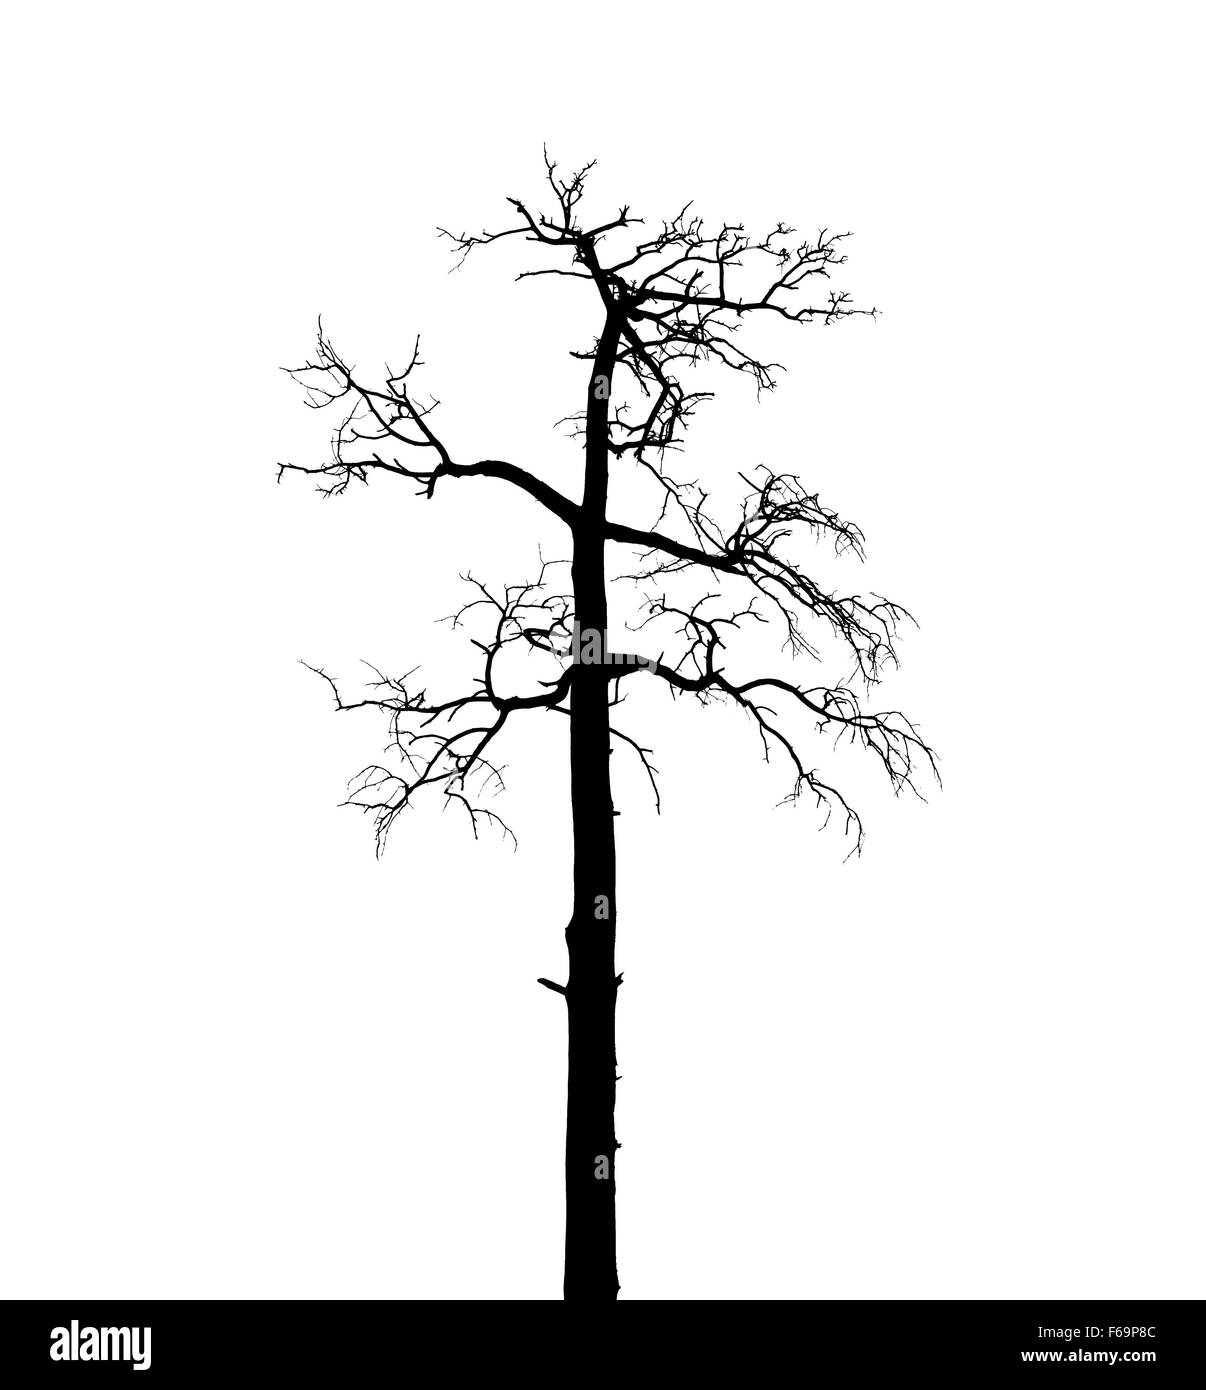 Dry dead European pine tree isolated on white background - Stock Image